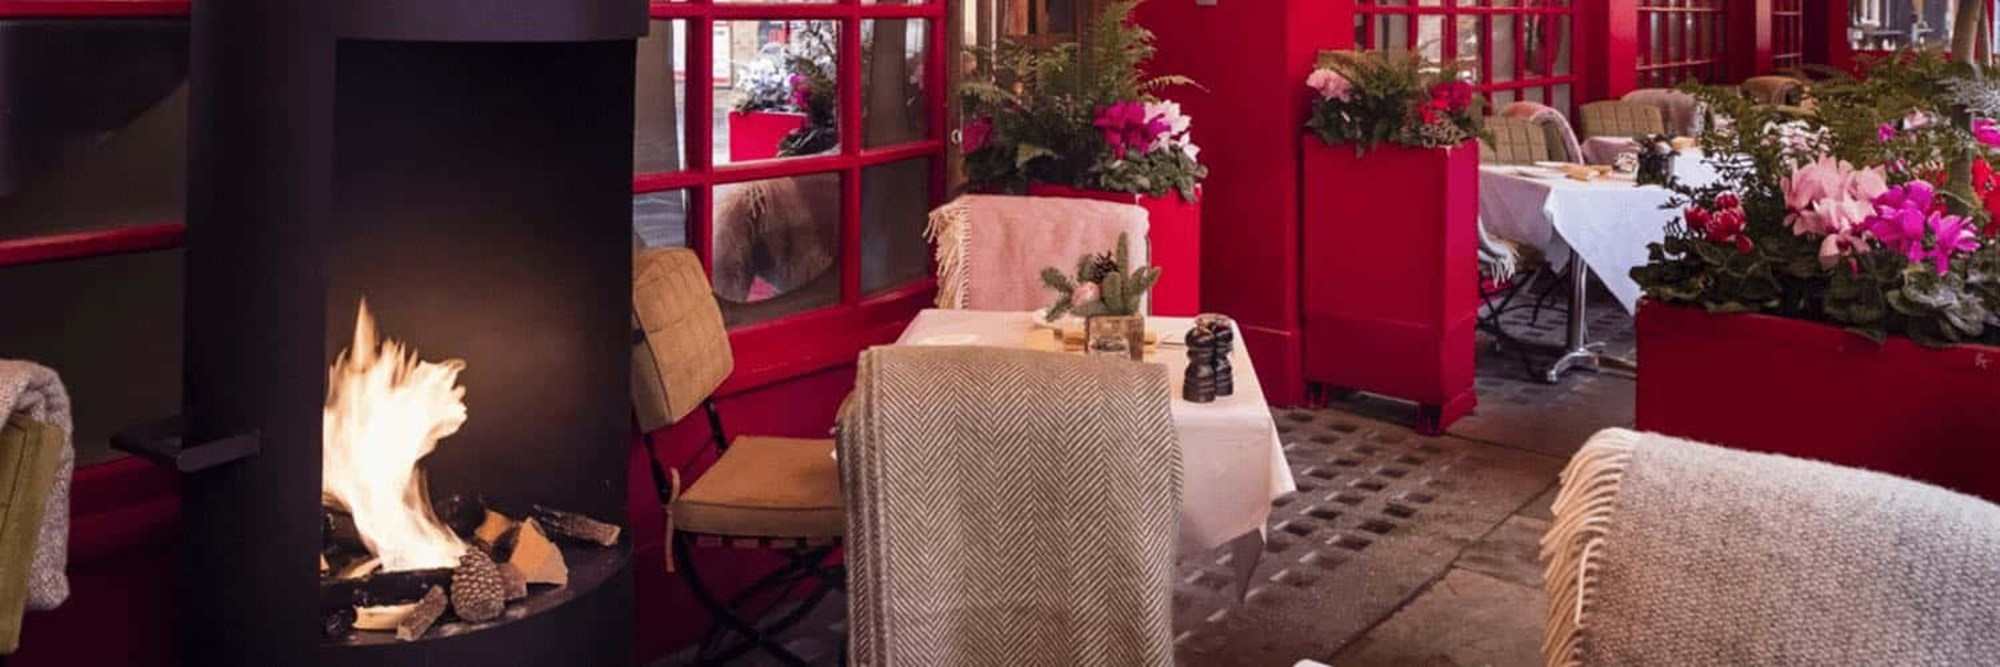 Warm crackling fire with blankets for cozy gatherings on the Terrace to enjoy hot beverages and small bites to share with friends